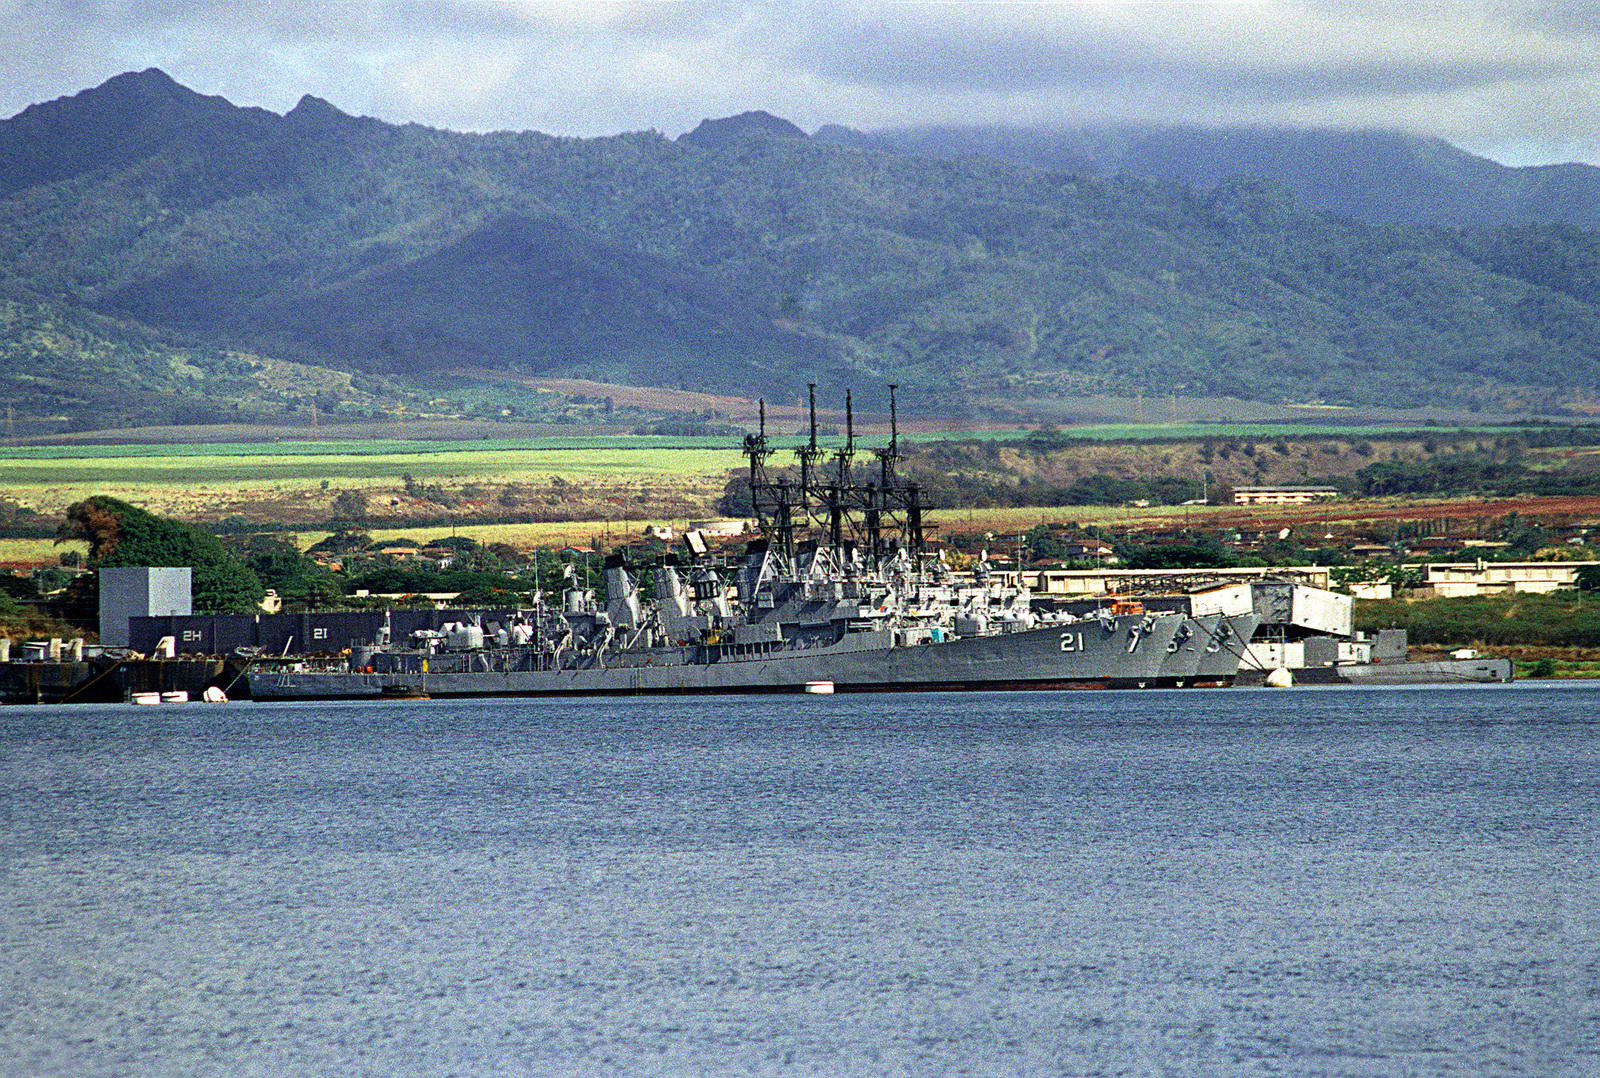 Four decommissioned Charles F. Adams class guided missile destroyers lie tied up in the Middle Loch. The ships are, from front to back: the COCHRANE (DDG-21), the HENRY B. WILSON (DDG-7), the JOSEPH STRAUSS (DDG-16) and the HOEL (DDG-13).